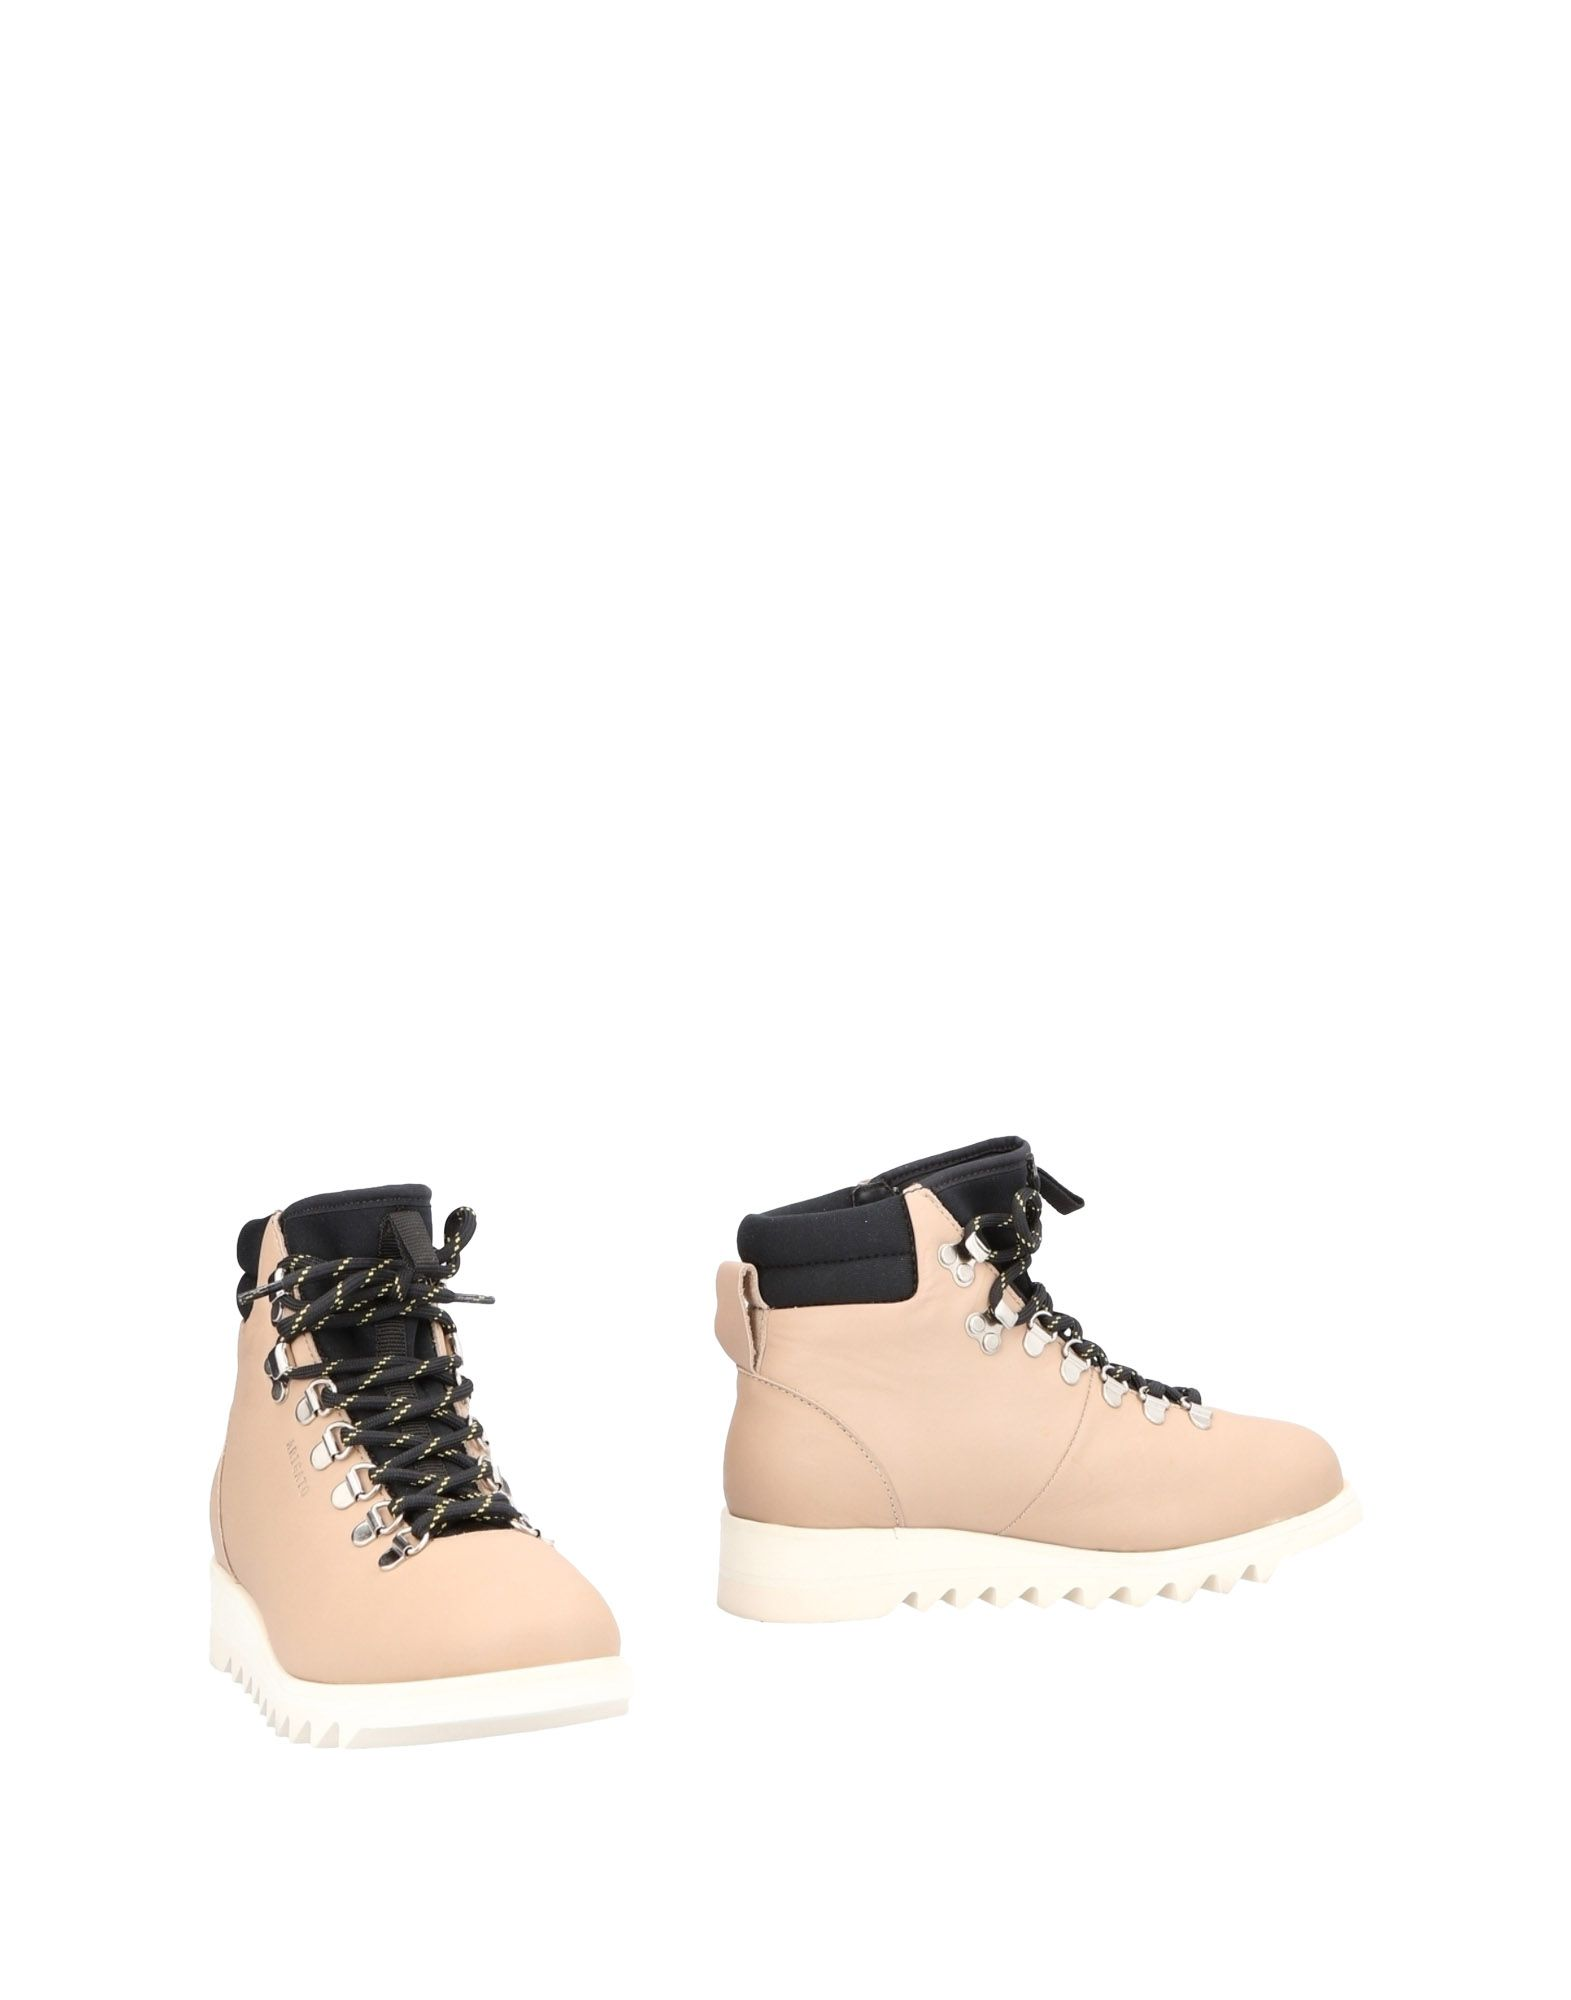 Axel Arigato Ankle Boot Ankle - Women Axel Arigato Ankle Boot Boots online on  Australia - 11472826RP 0acdd9